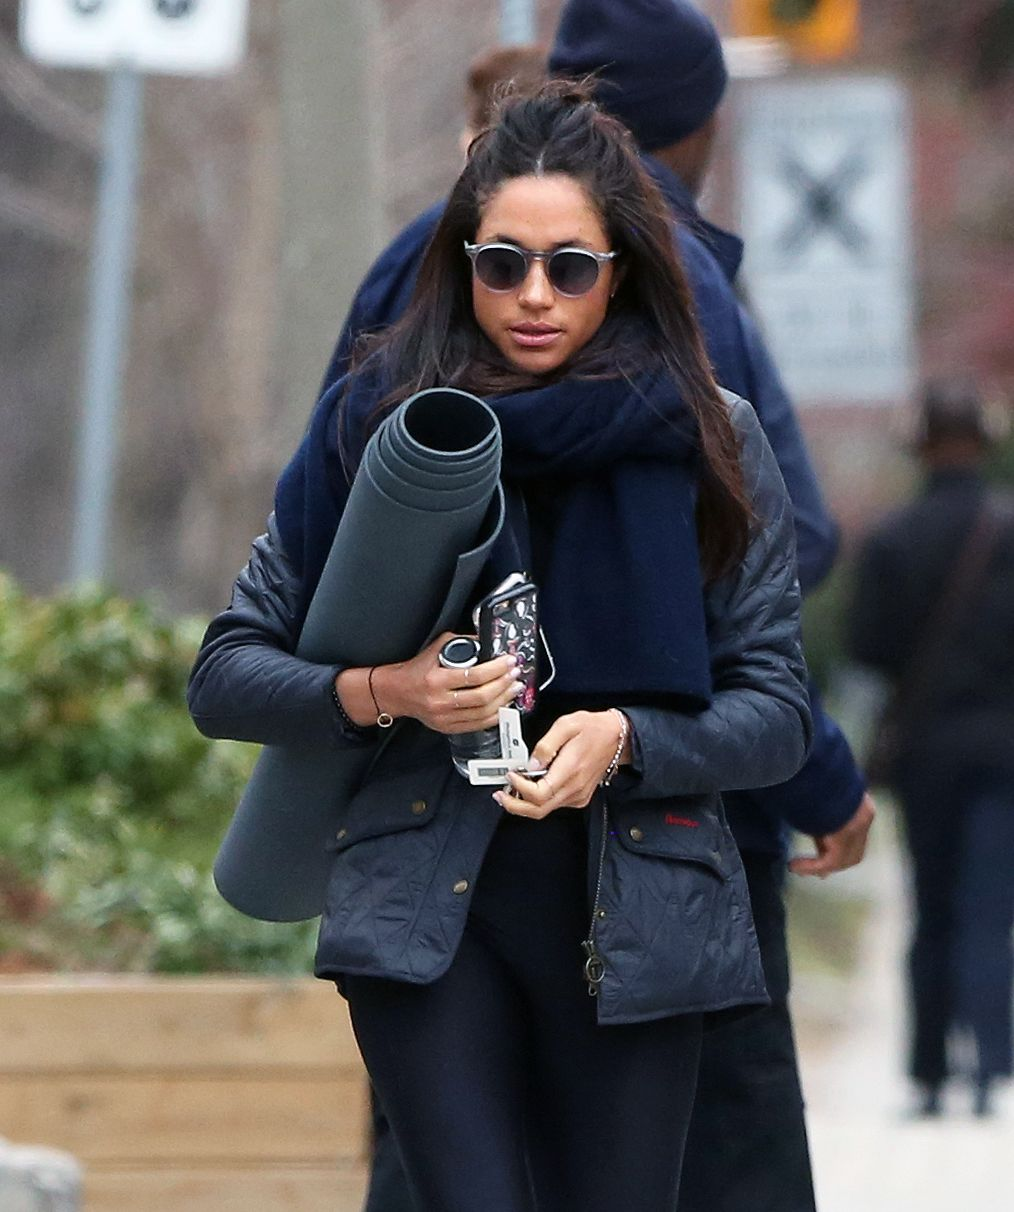 Meghan Markle Takes a Public Yoga Class Shortly After Landing in New York City